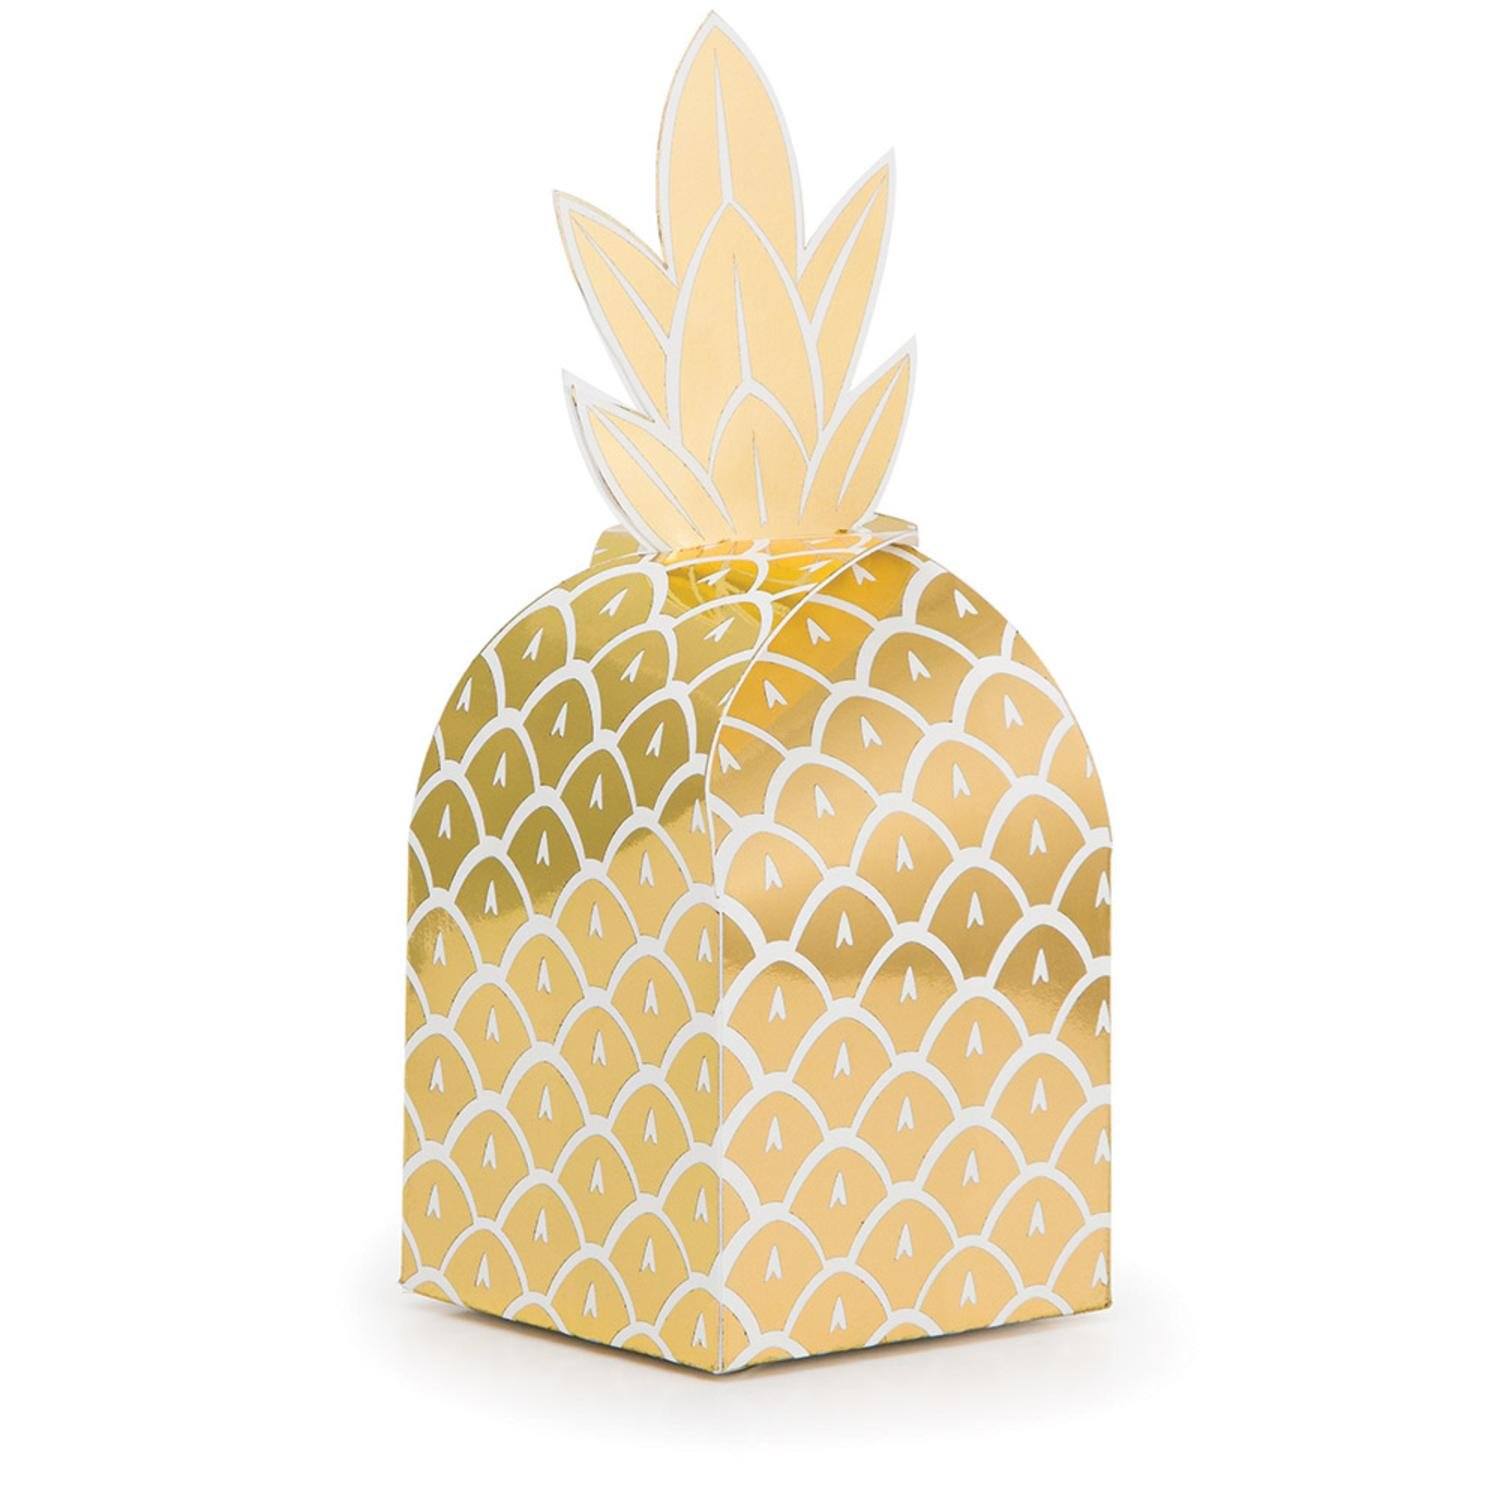 Party Central Club Pack of 48 Glittering Gold and Foil Stamped Pineapple Decorative Favor Boxes 10.5''